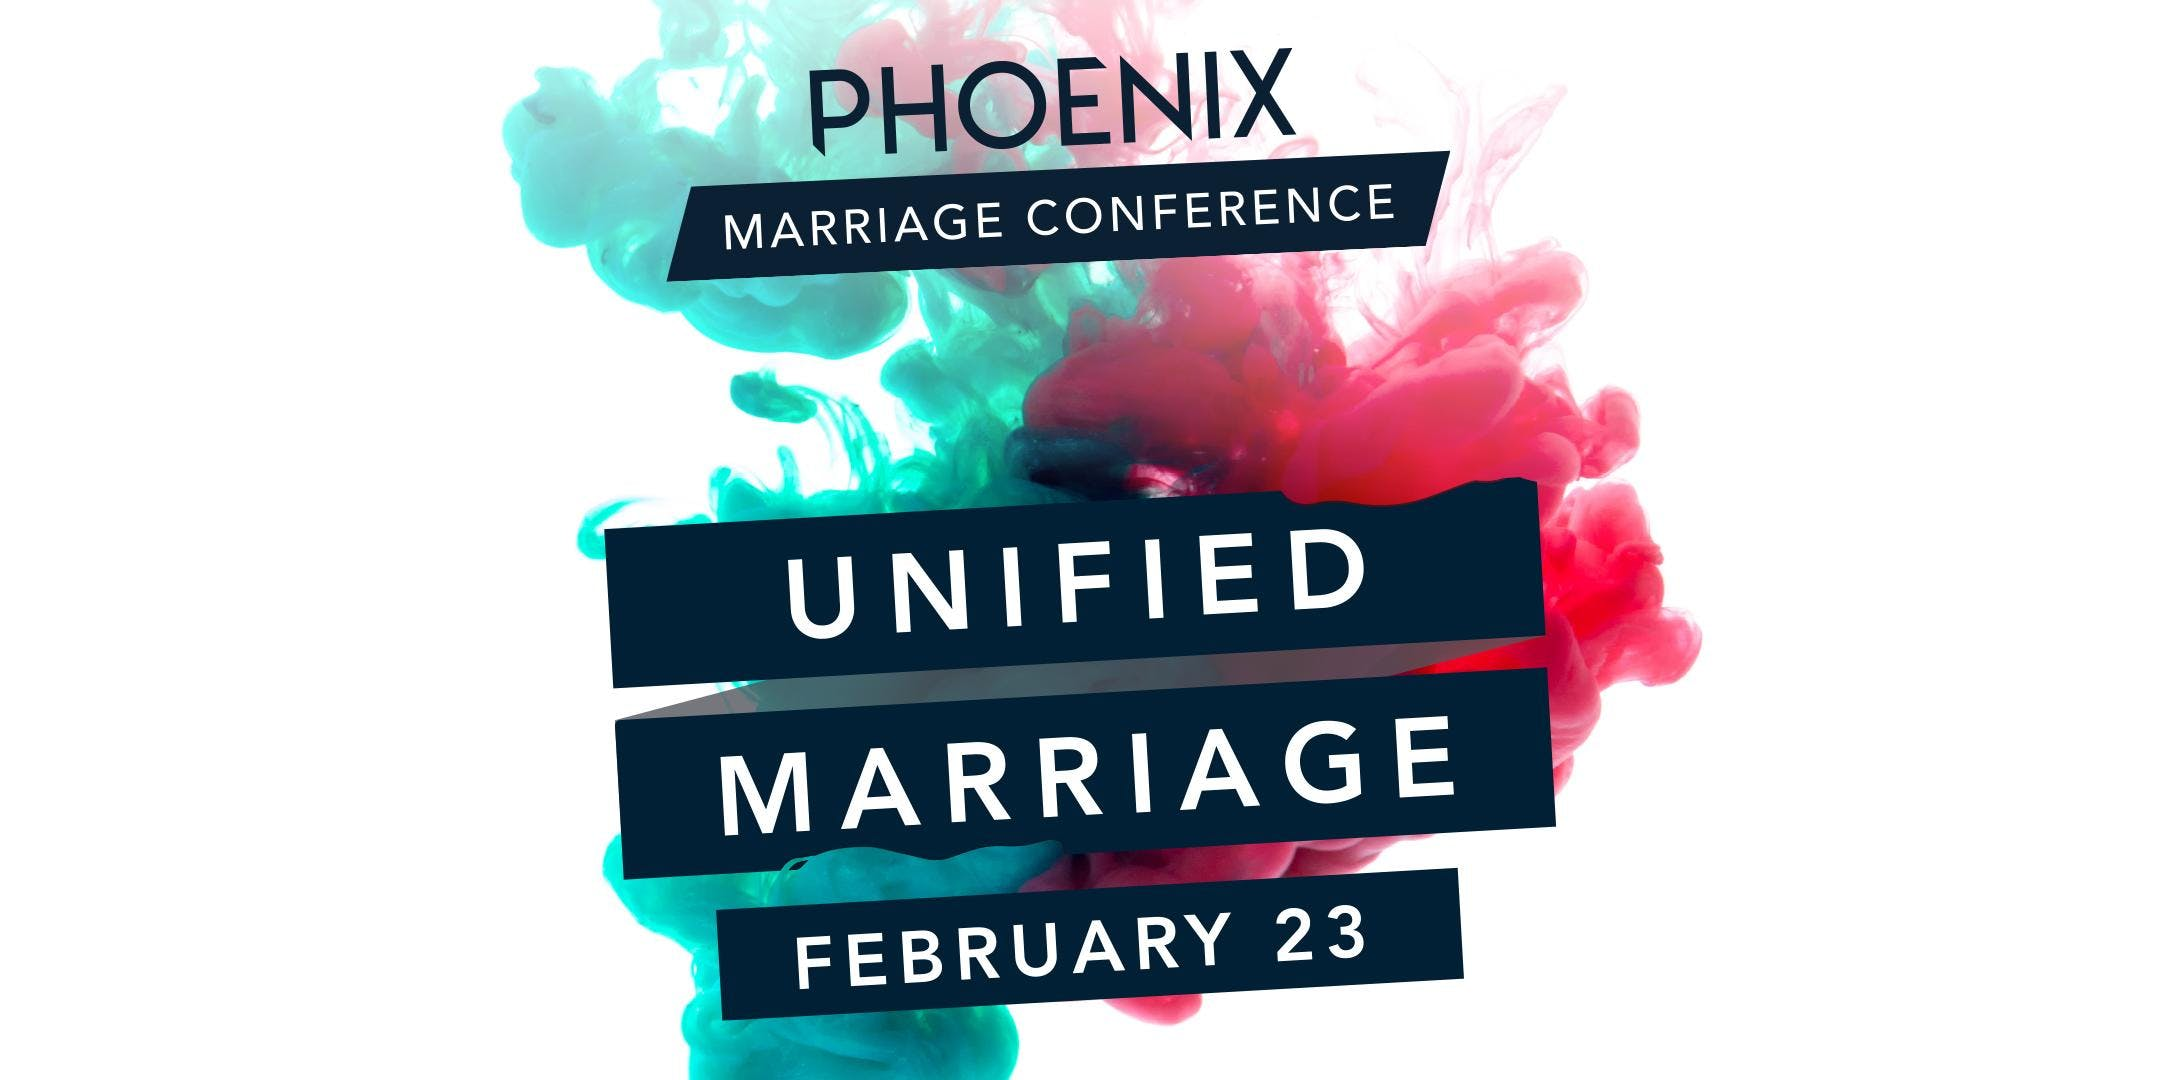 Phoenix Marriage Conference